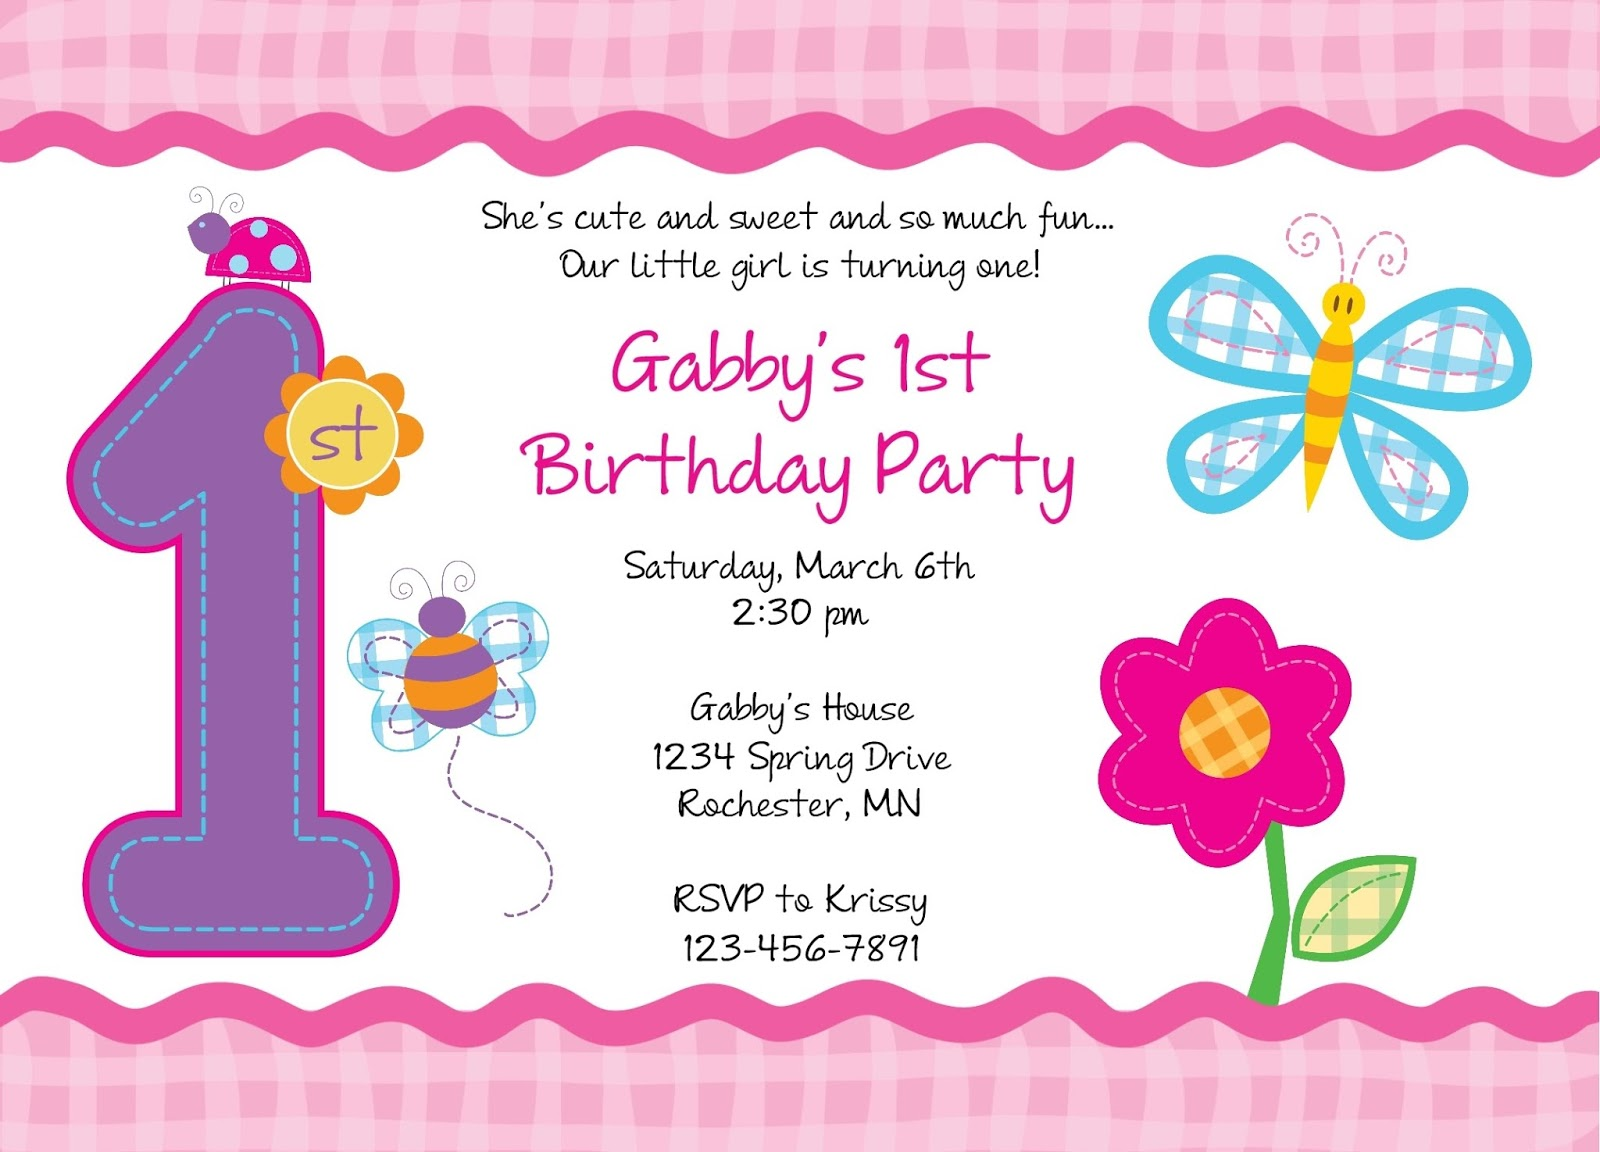 Email birthday party invitations